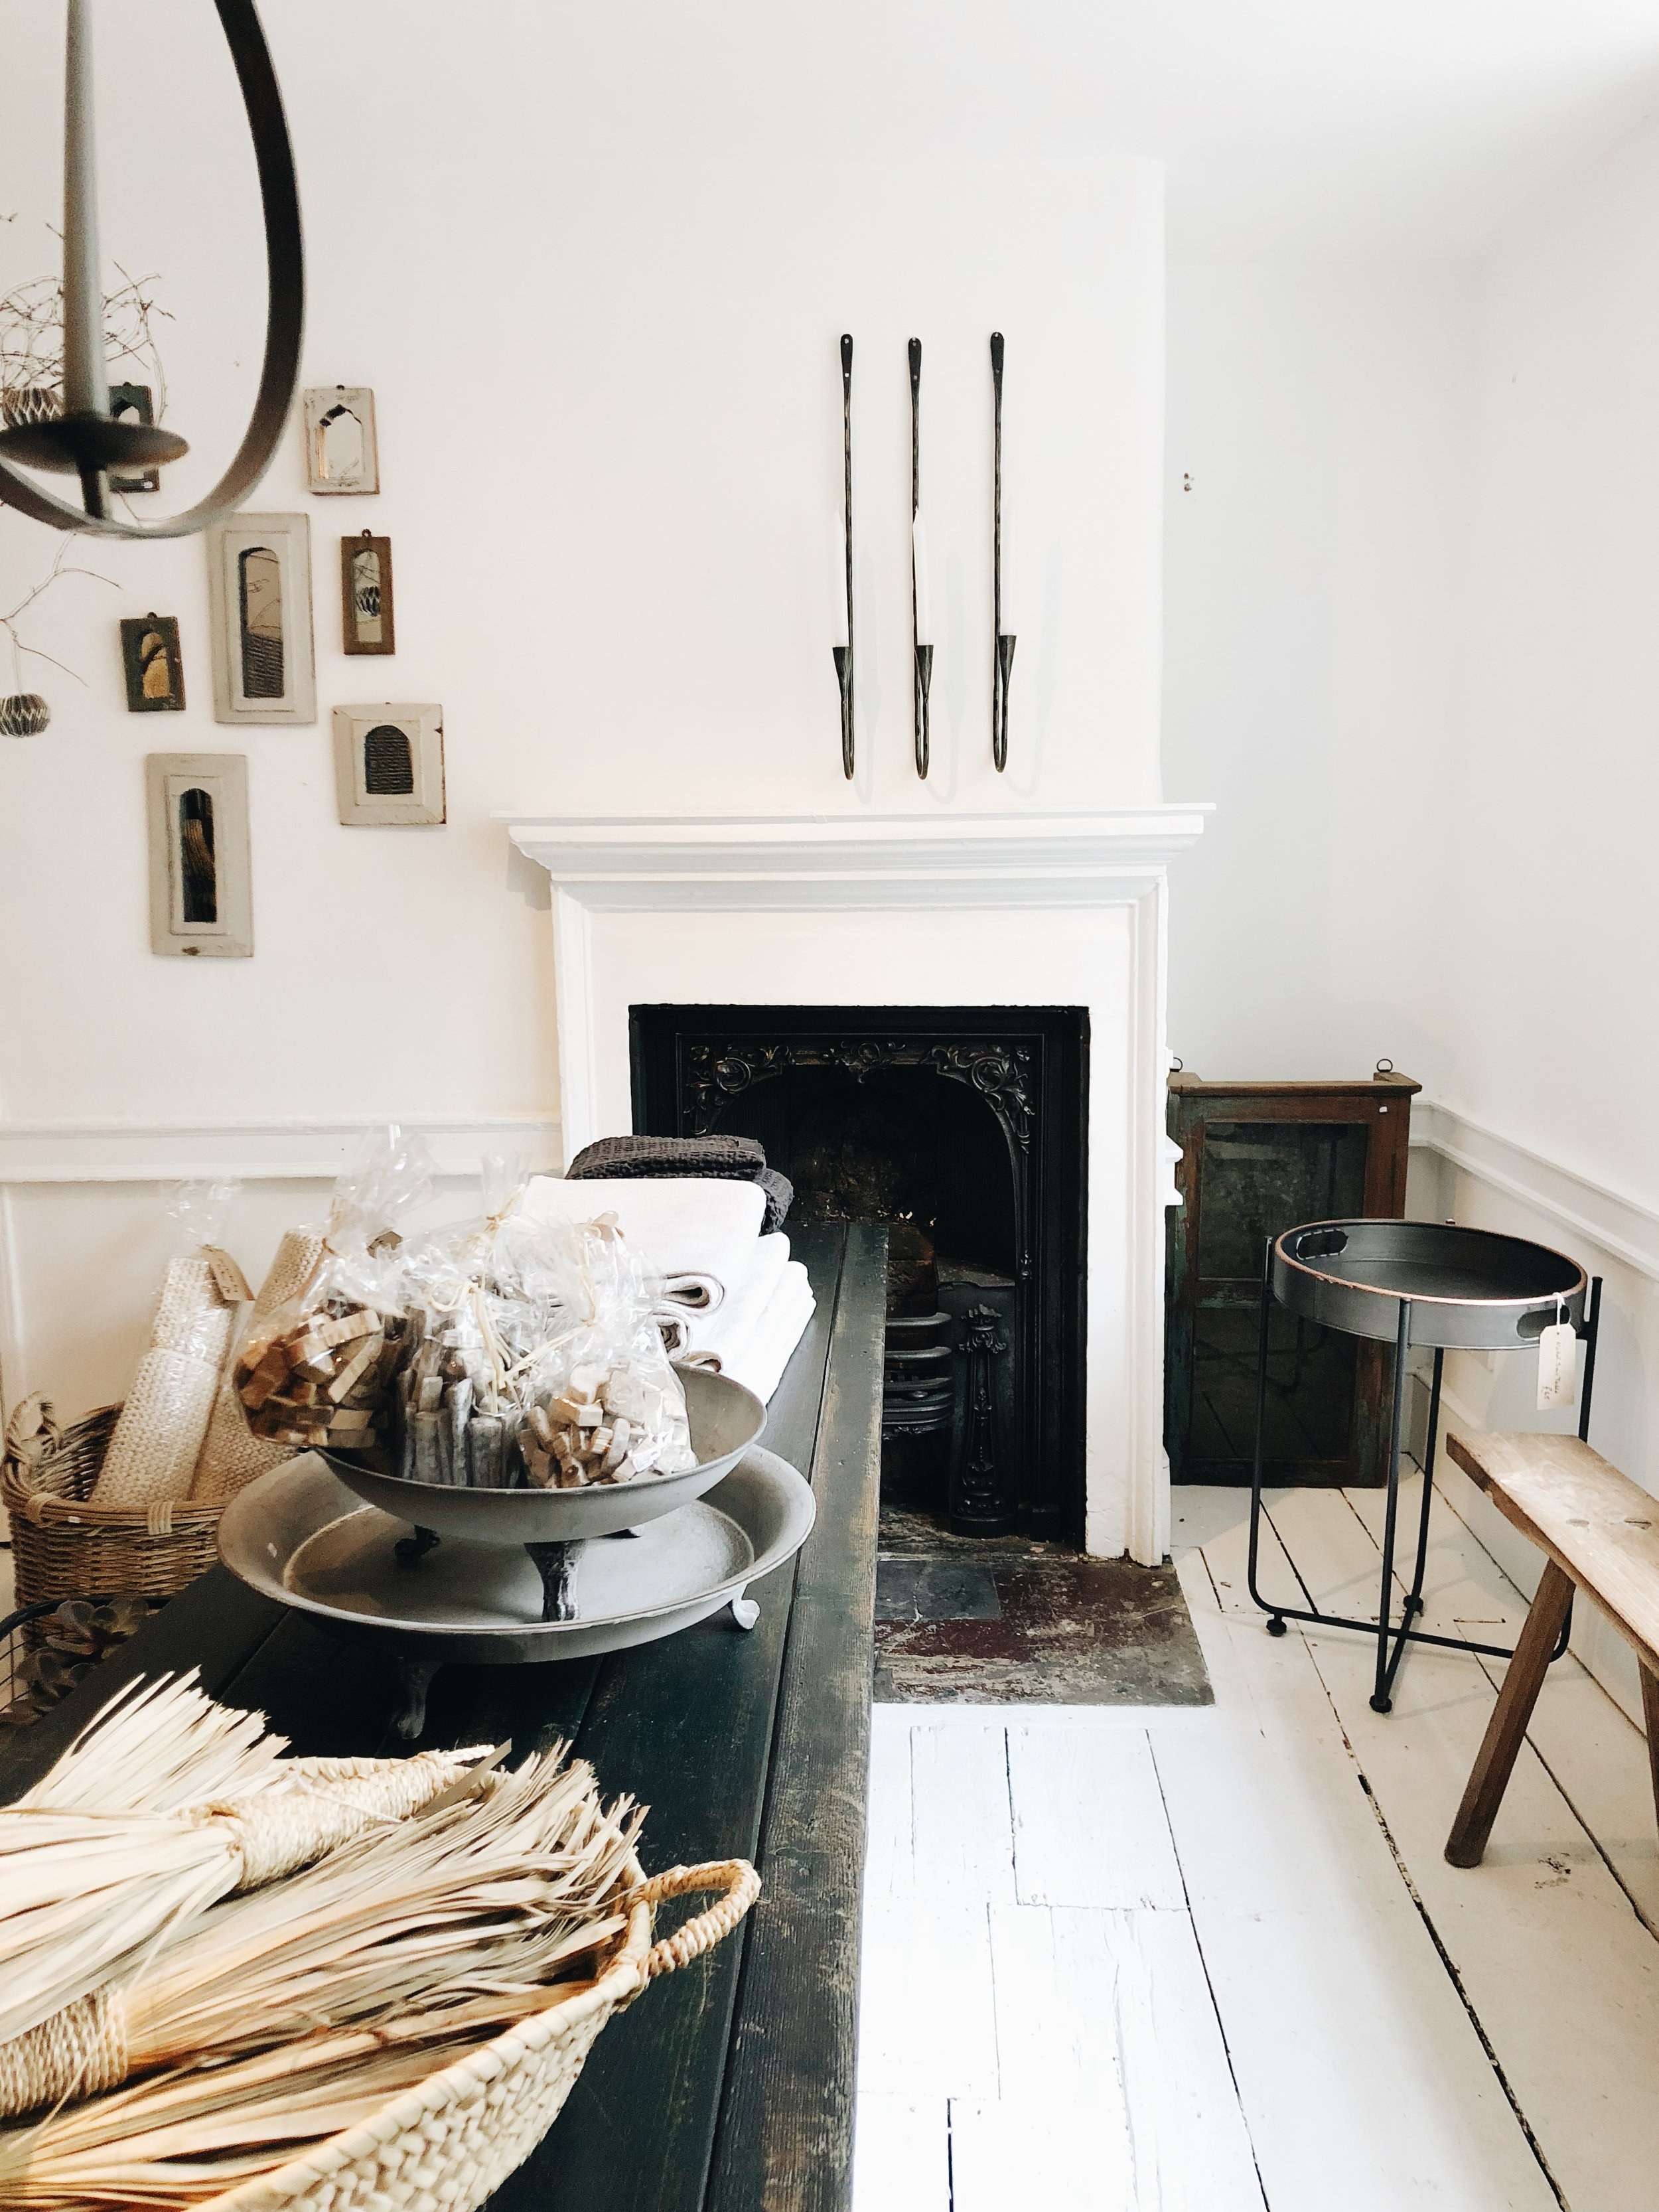 The Fig Store | Bath, England | Sea of Atlas